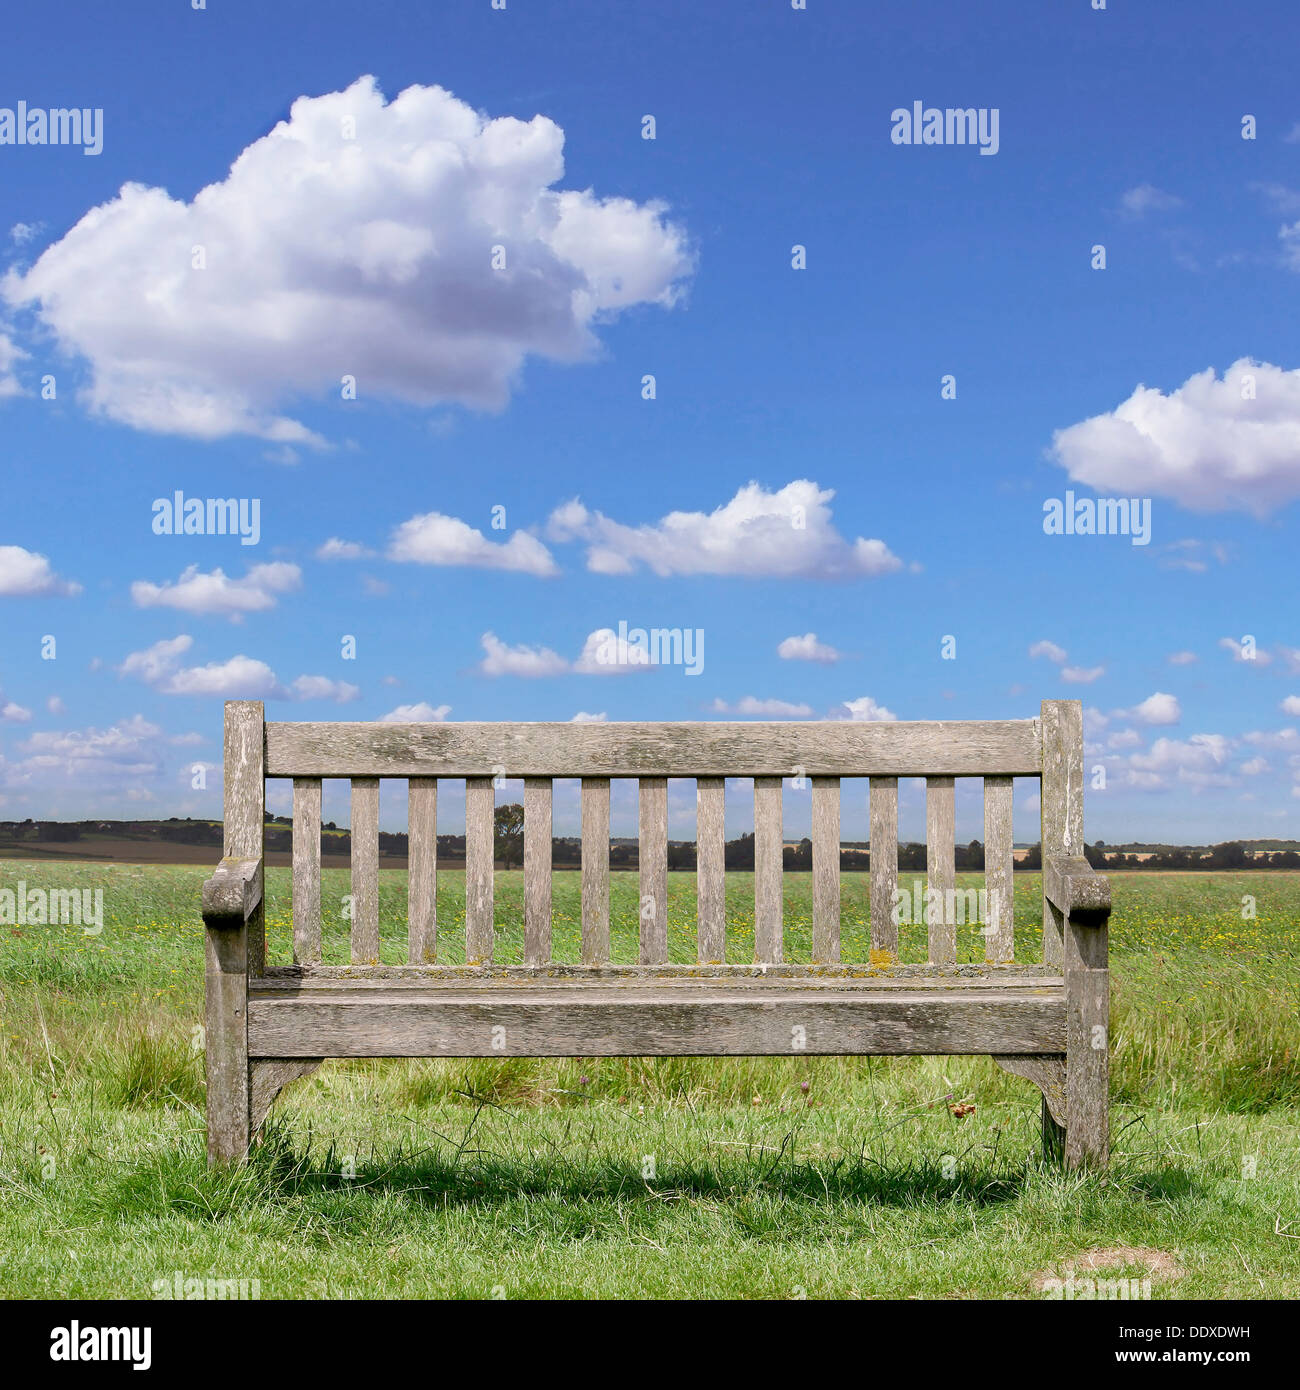 A Wooden Park Bench with Grass and Blue Sky - Stock Image